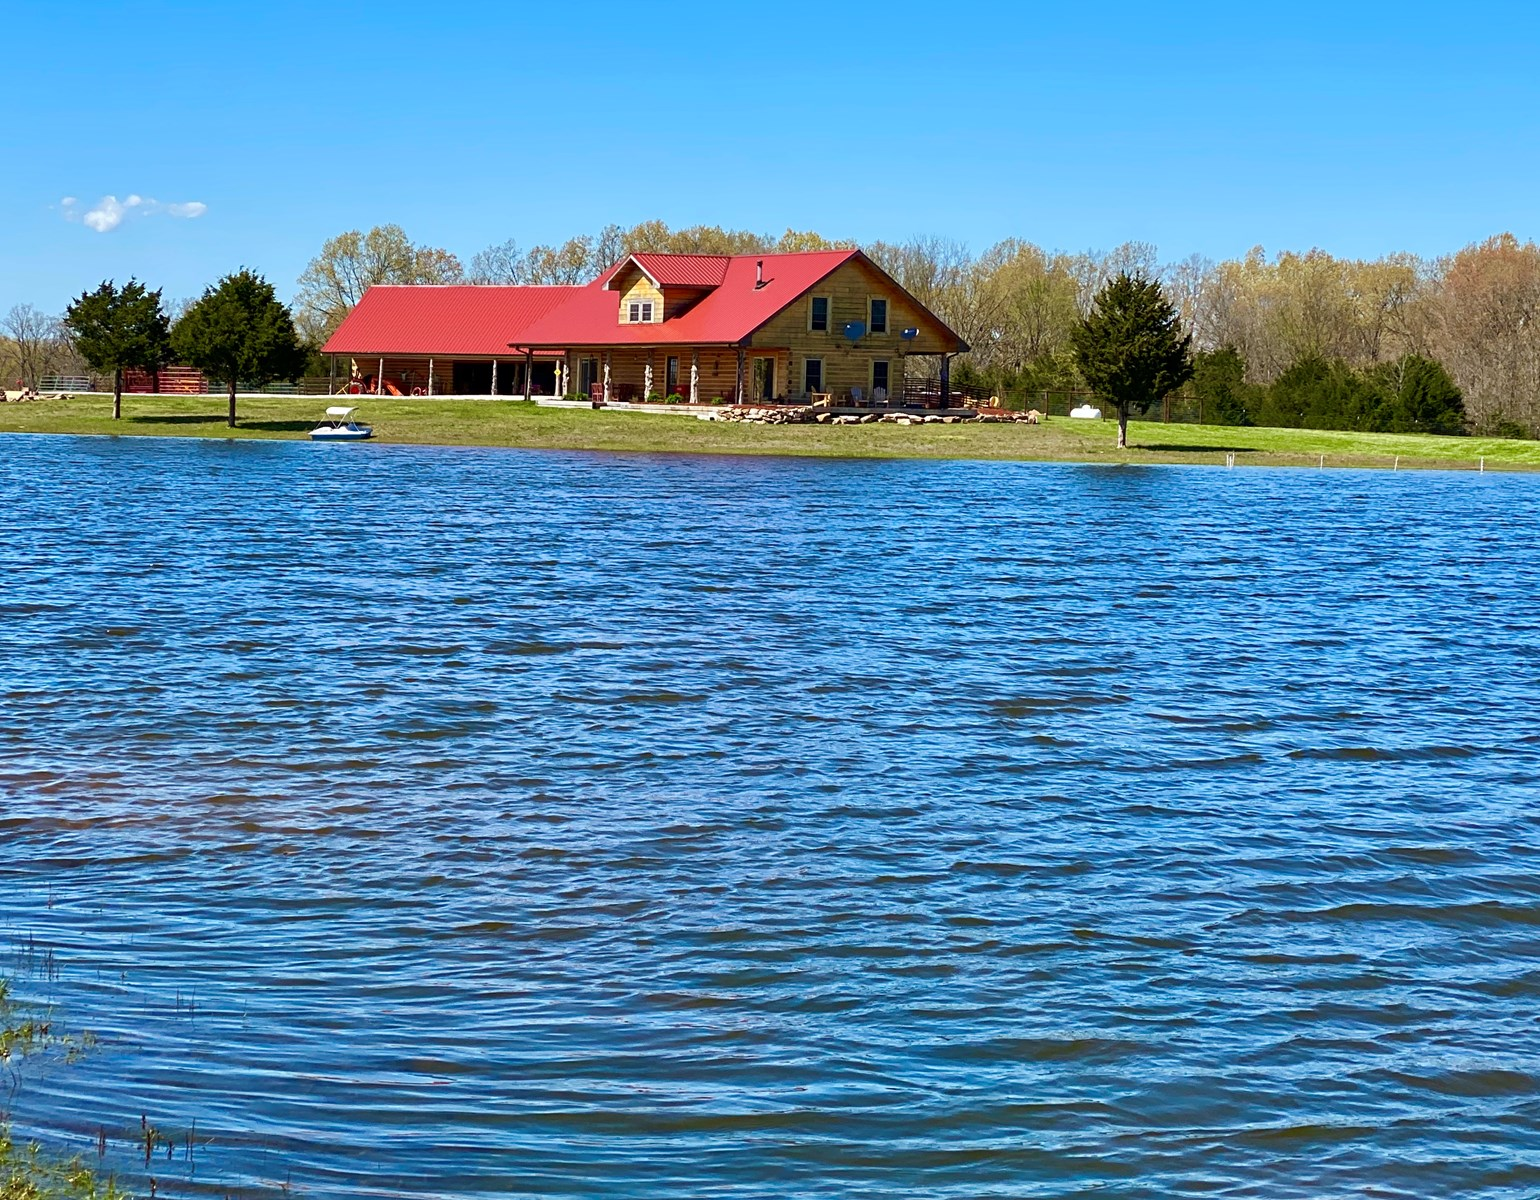 Southern Missouri Log Home with Private Lake, Pasture, Woods